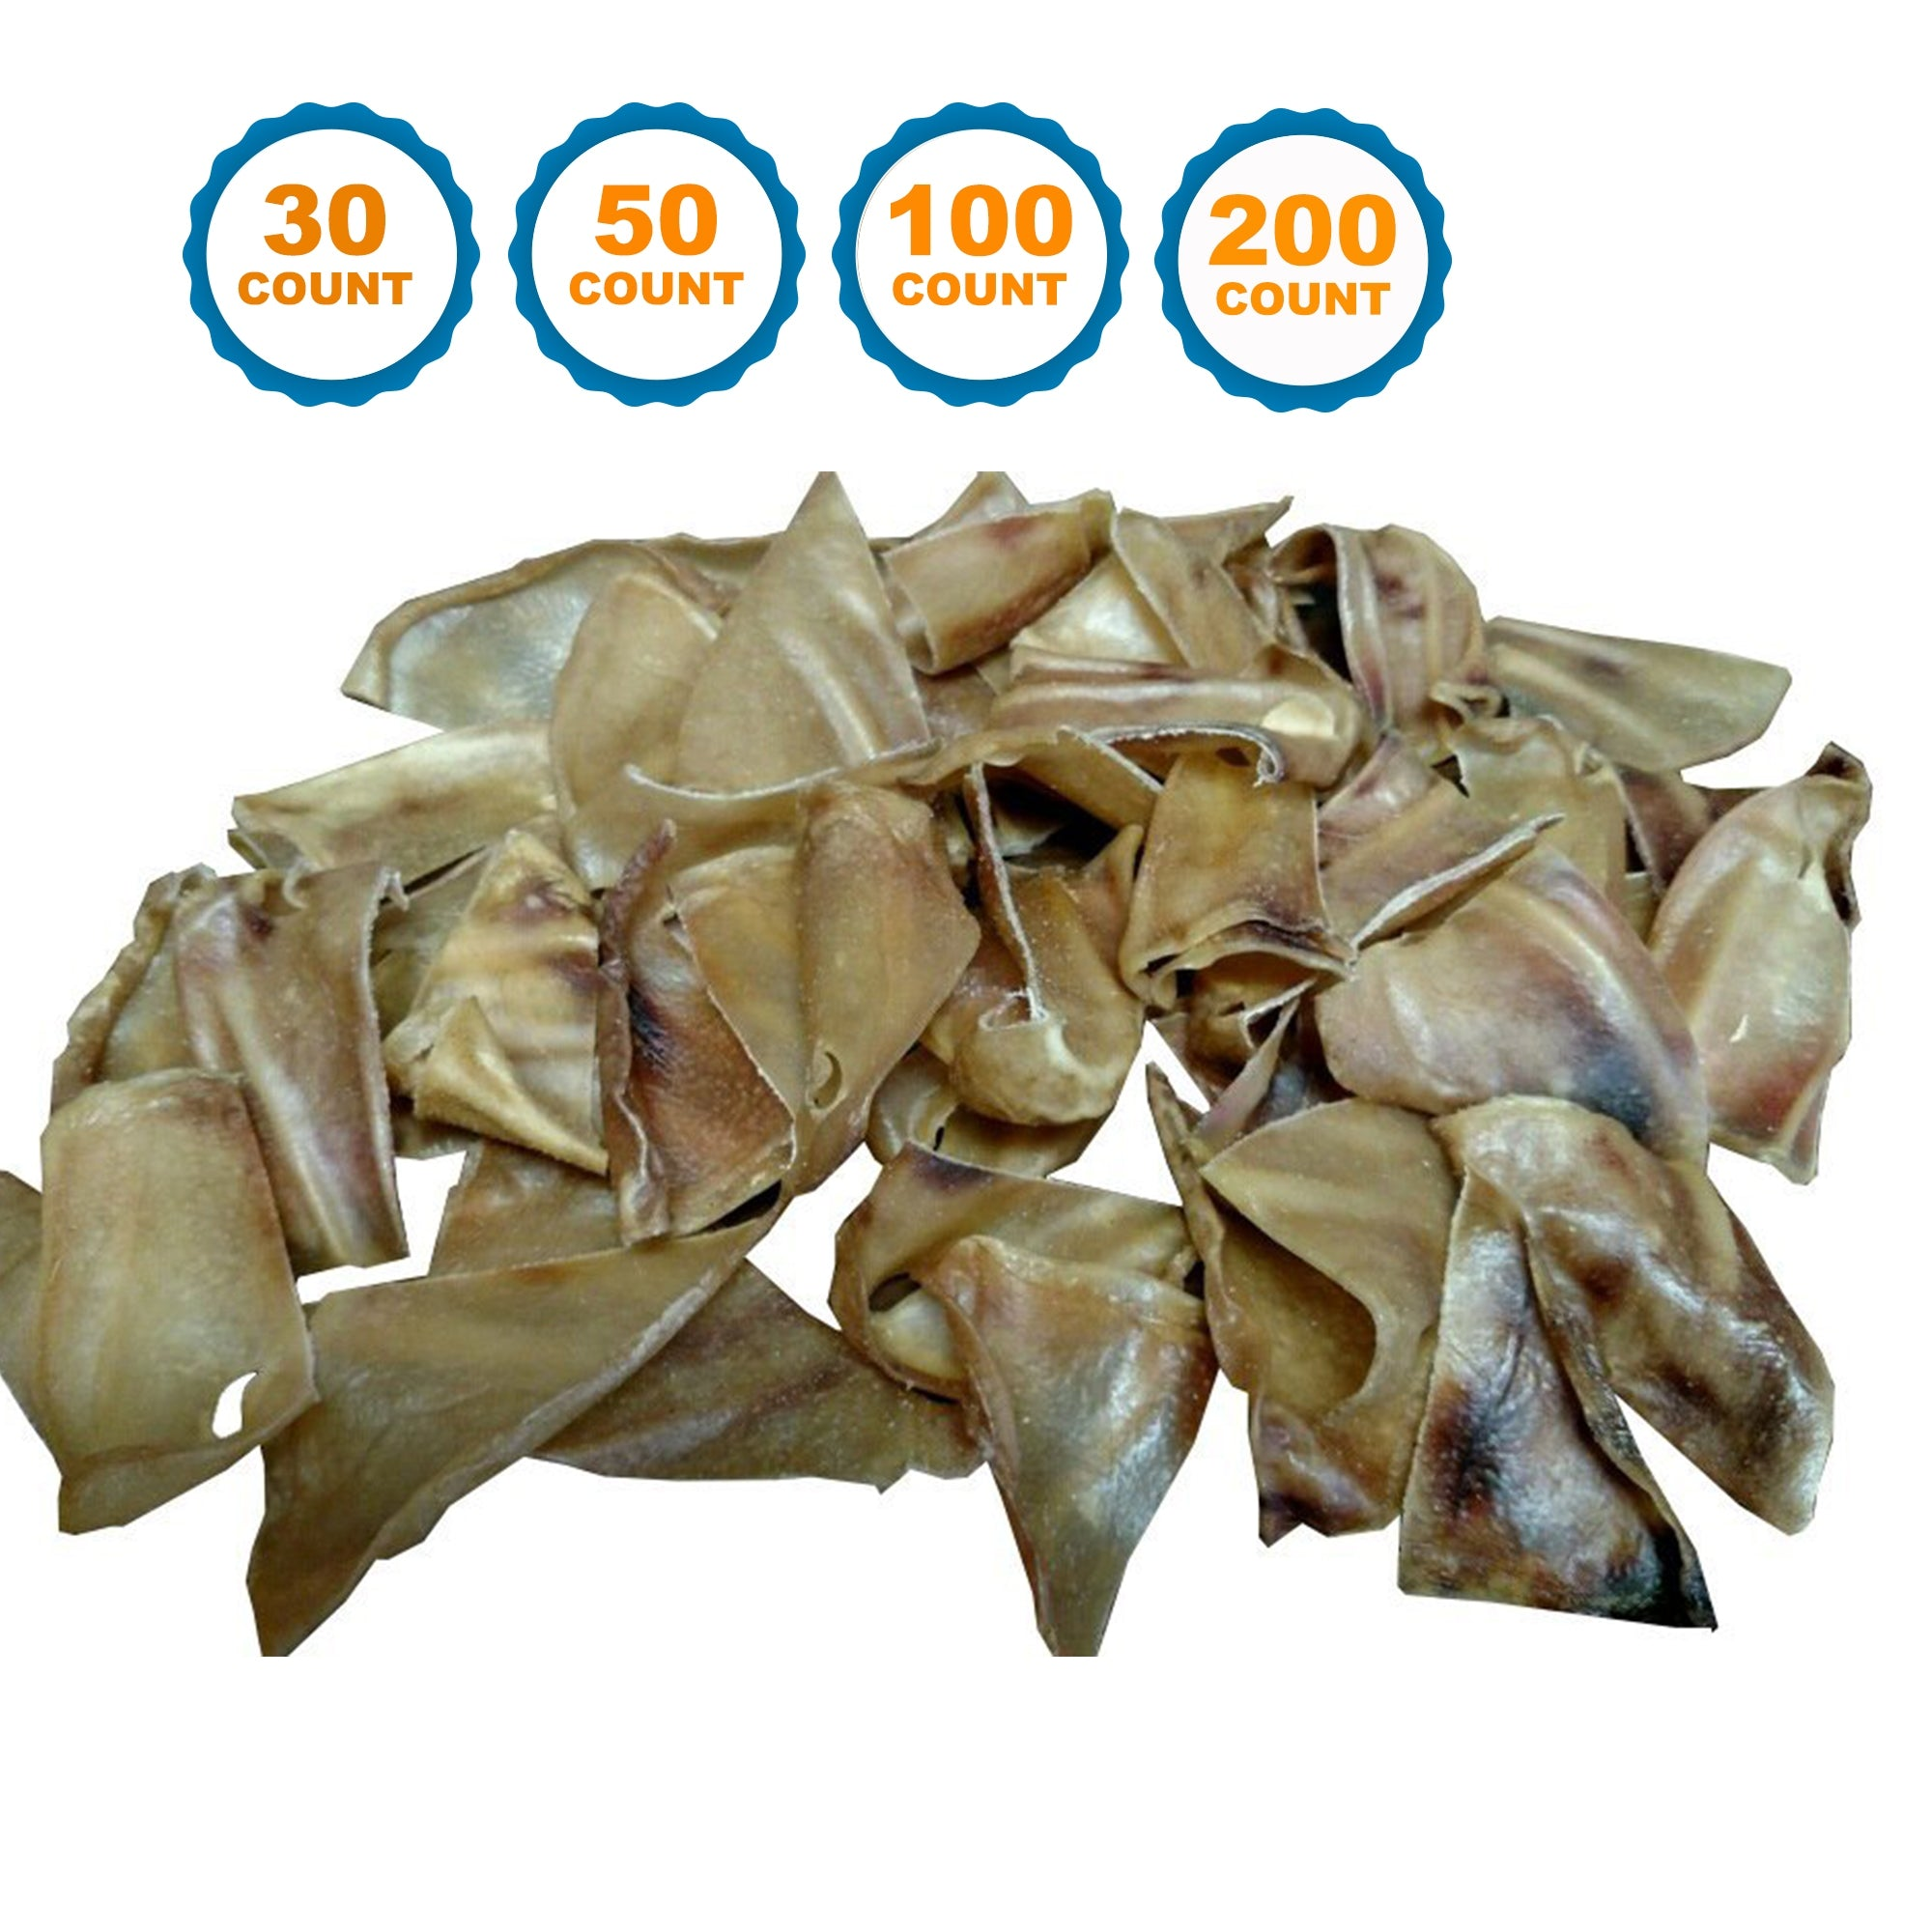 HALF PIG EARS dog chews 30, 50, 100 or 200 Count - Cut Pork Ear for dogs | 100% Natural USDA Approved Chews from 123 Treats